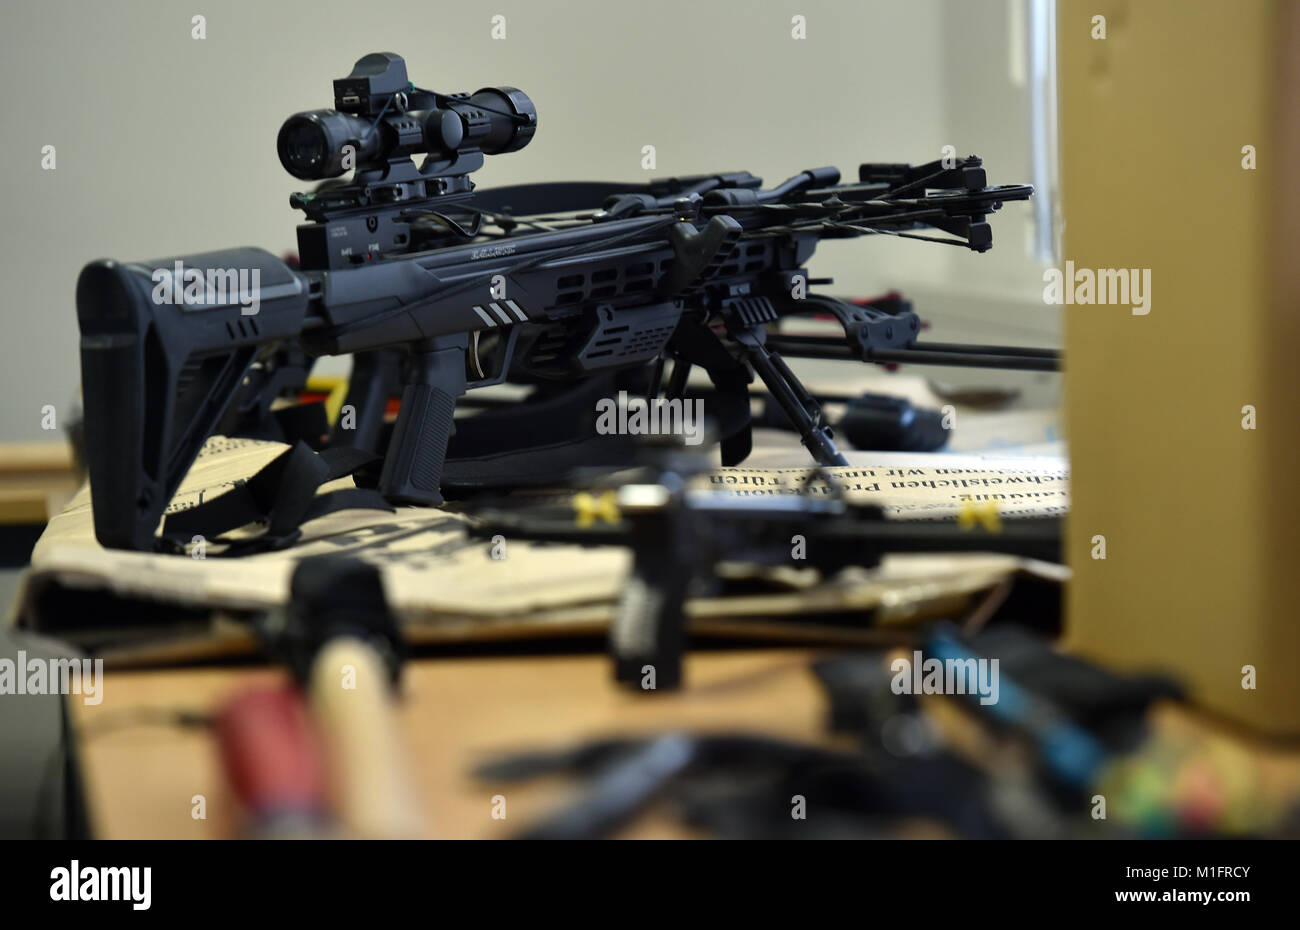 A Seized Automatic Crossbow And Other Objects Displayed On Table At Press Conference In Krefeld Germany 30 January 2018 The Morning Of